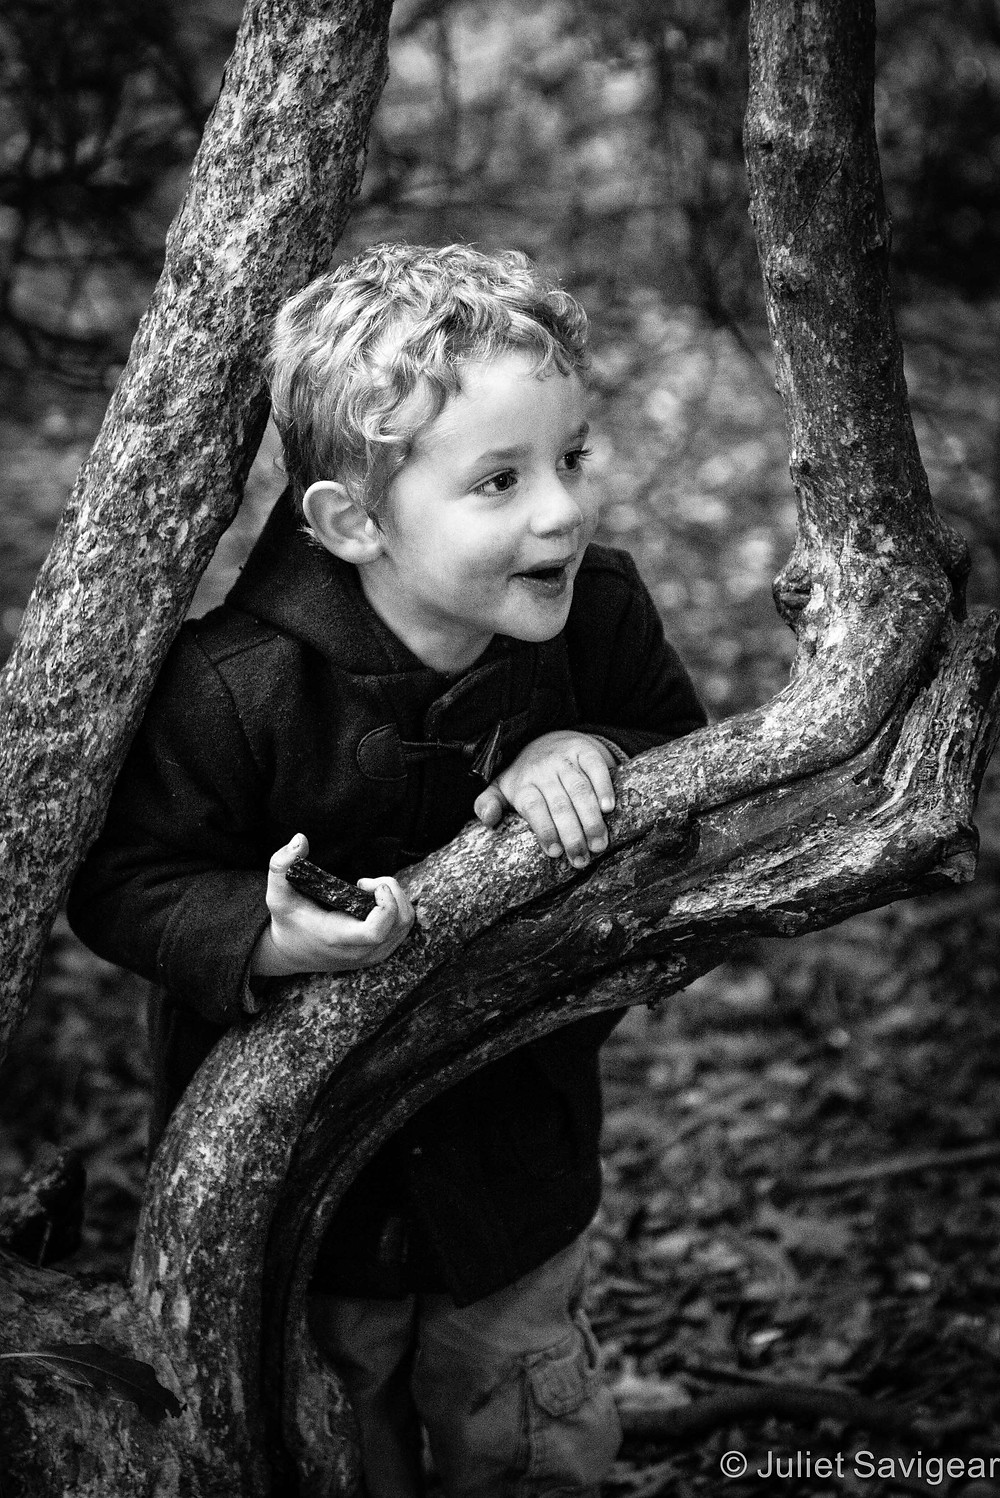 Cheeky Face In The Branches - Children's Photography, Chiswick